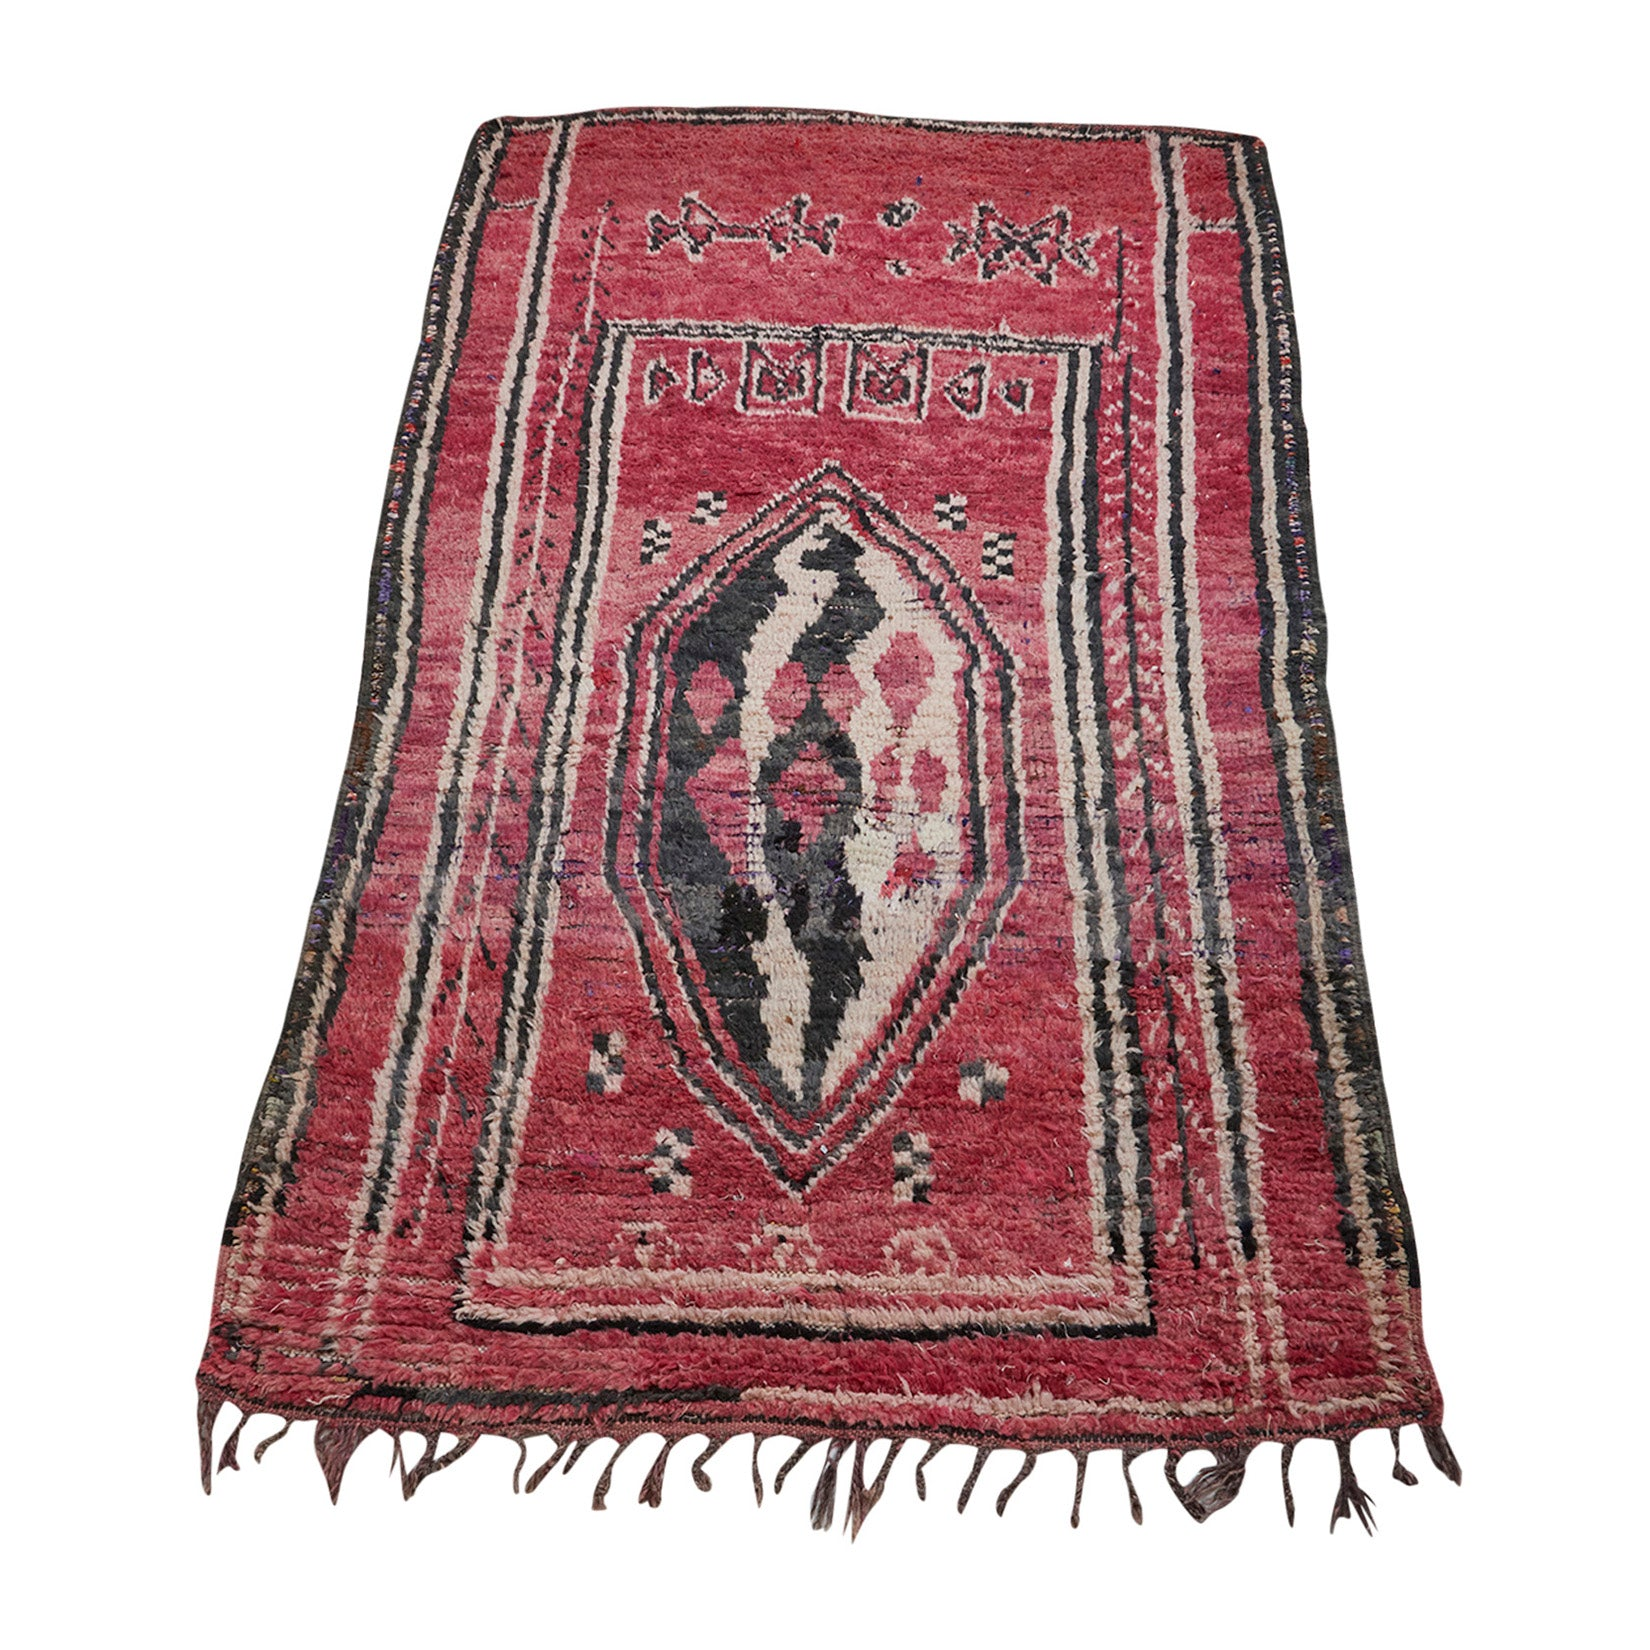 Red vintage berber carpet with central motif - Kantara | Moroccan Rugs